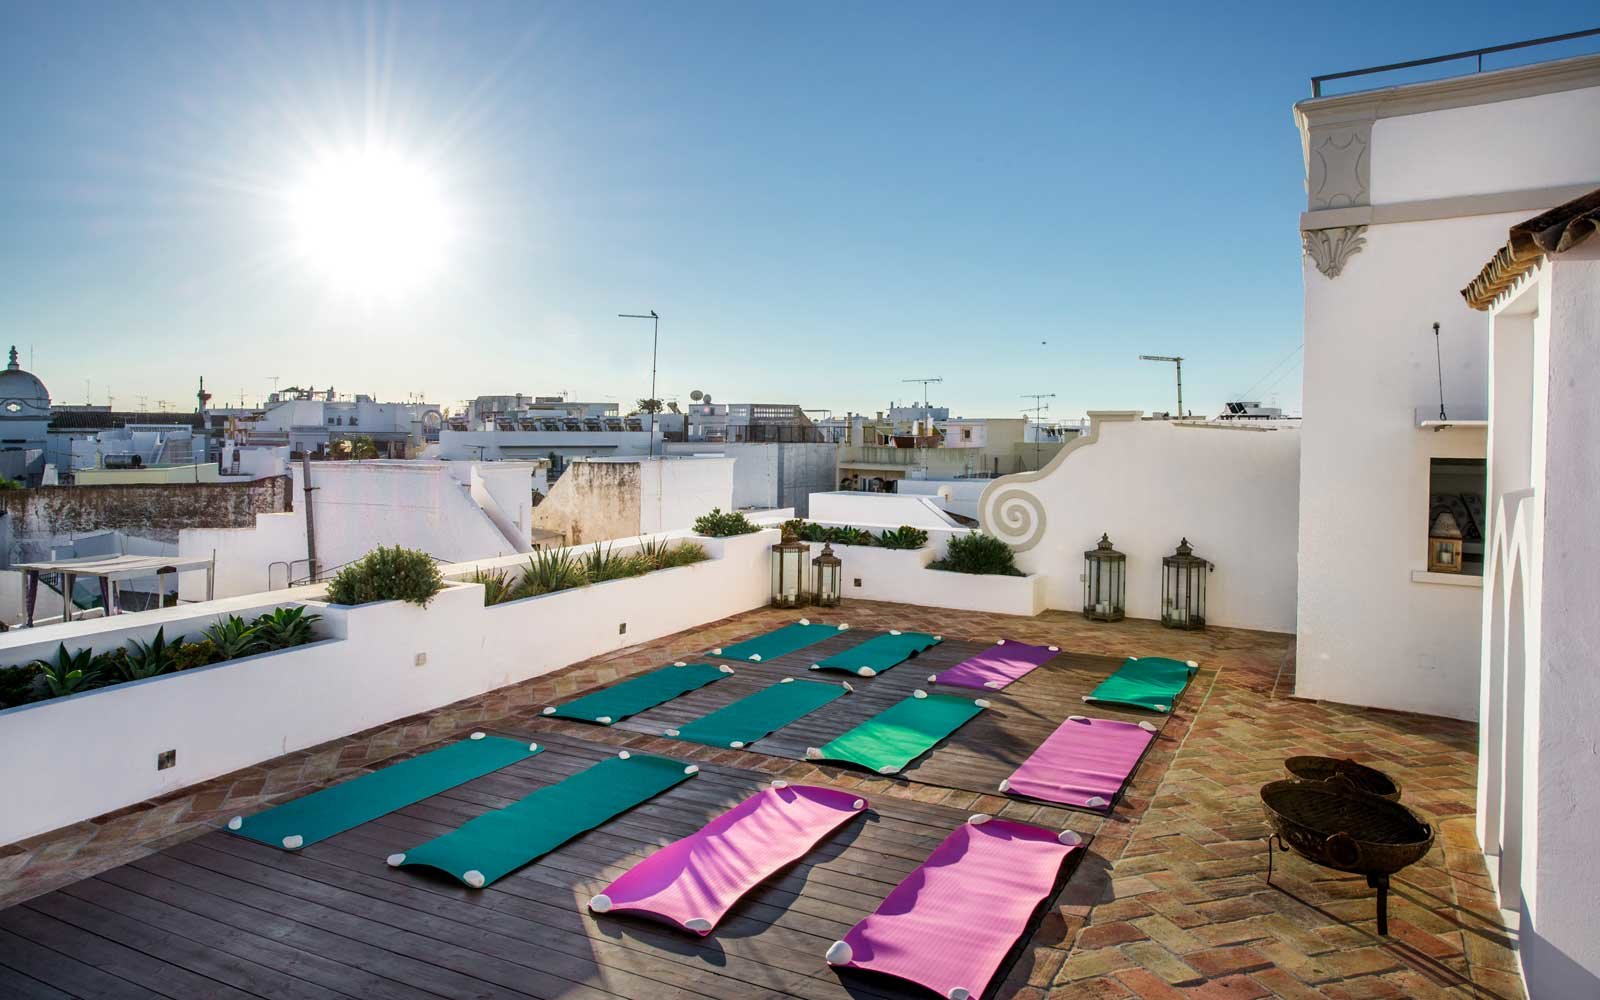 Yoga space at Casa Fuzetta, in Portugal